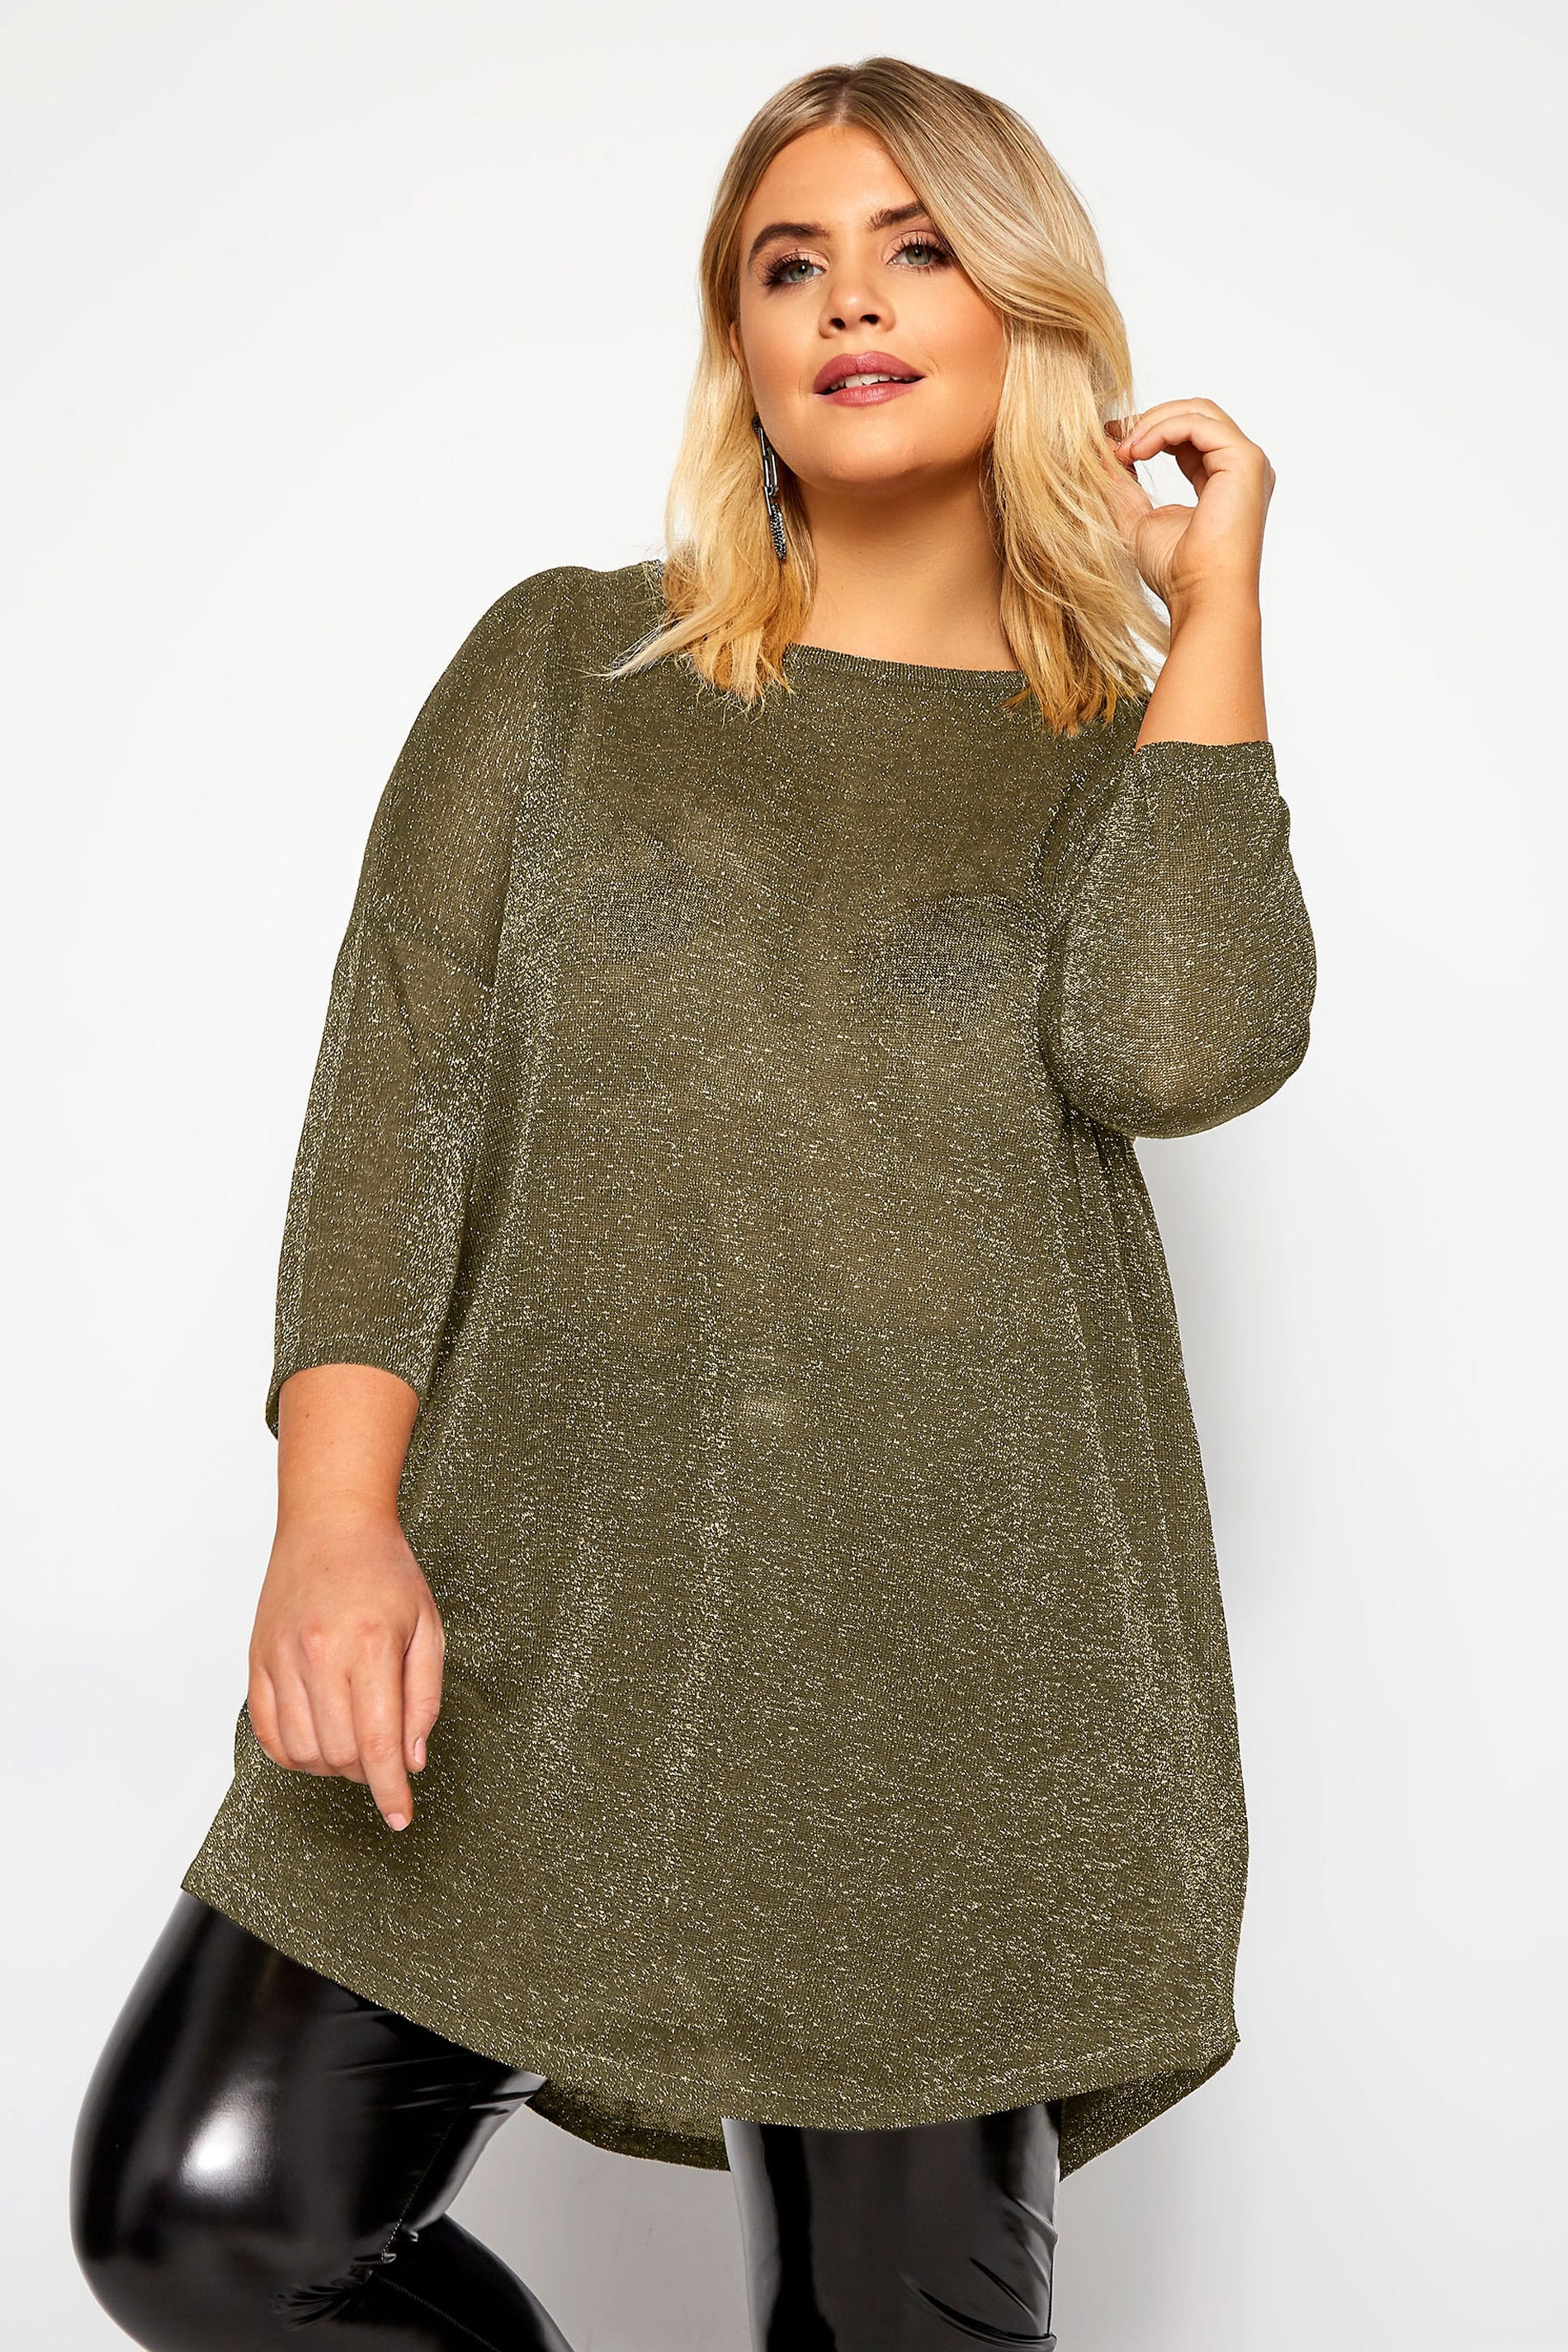 Gold Metallic Knitted Jumper